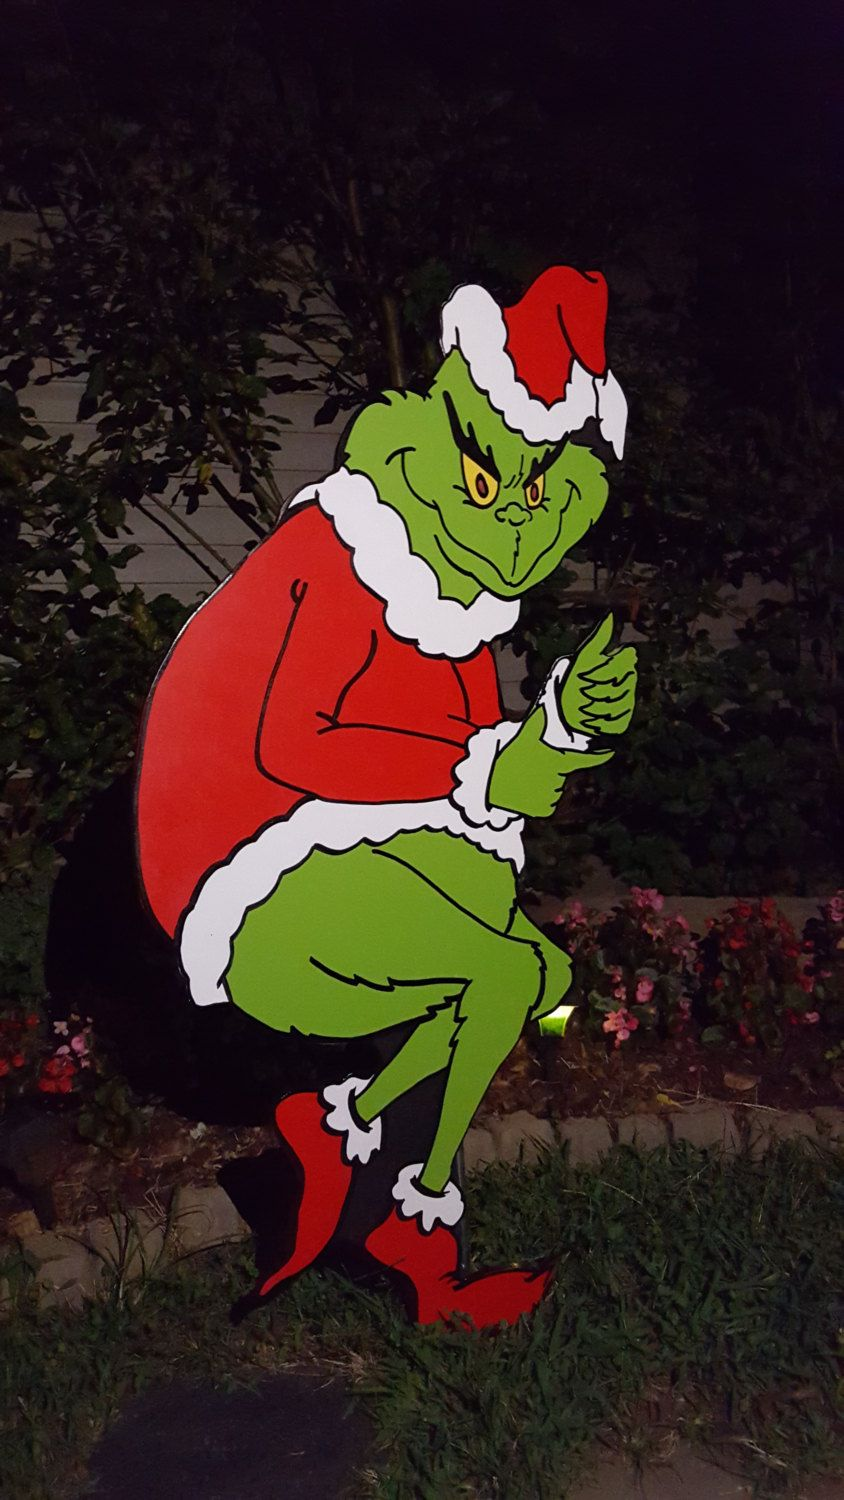 5 Ft The Grinch Stealing Christmas By Hashtagartz On